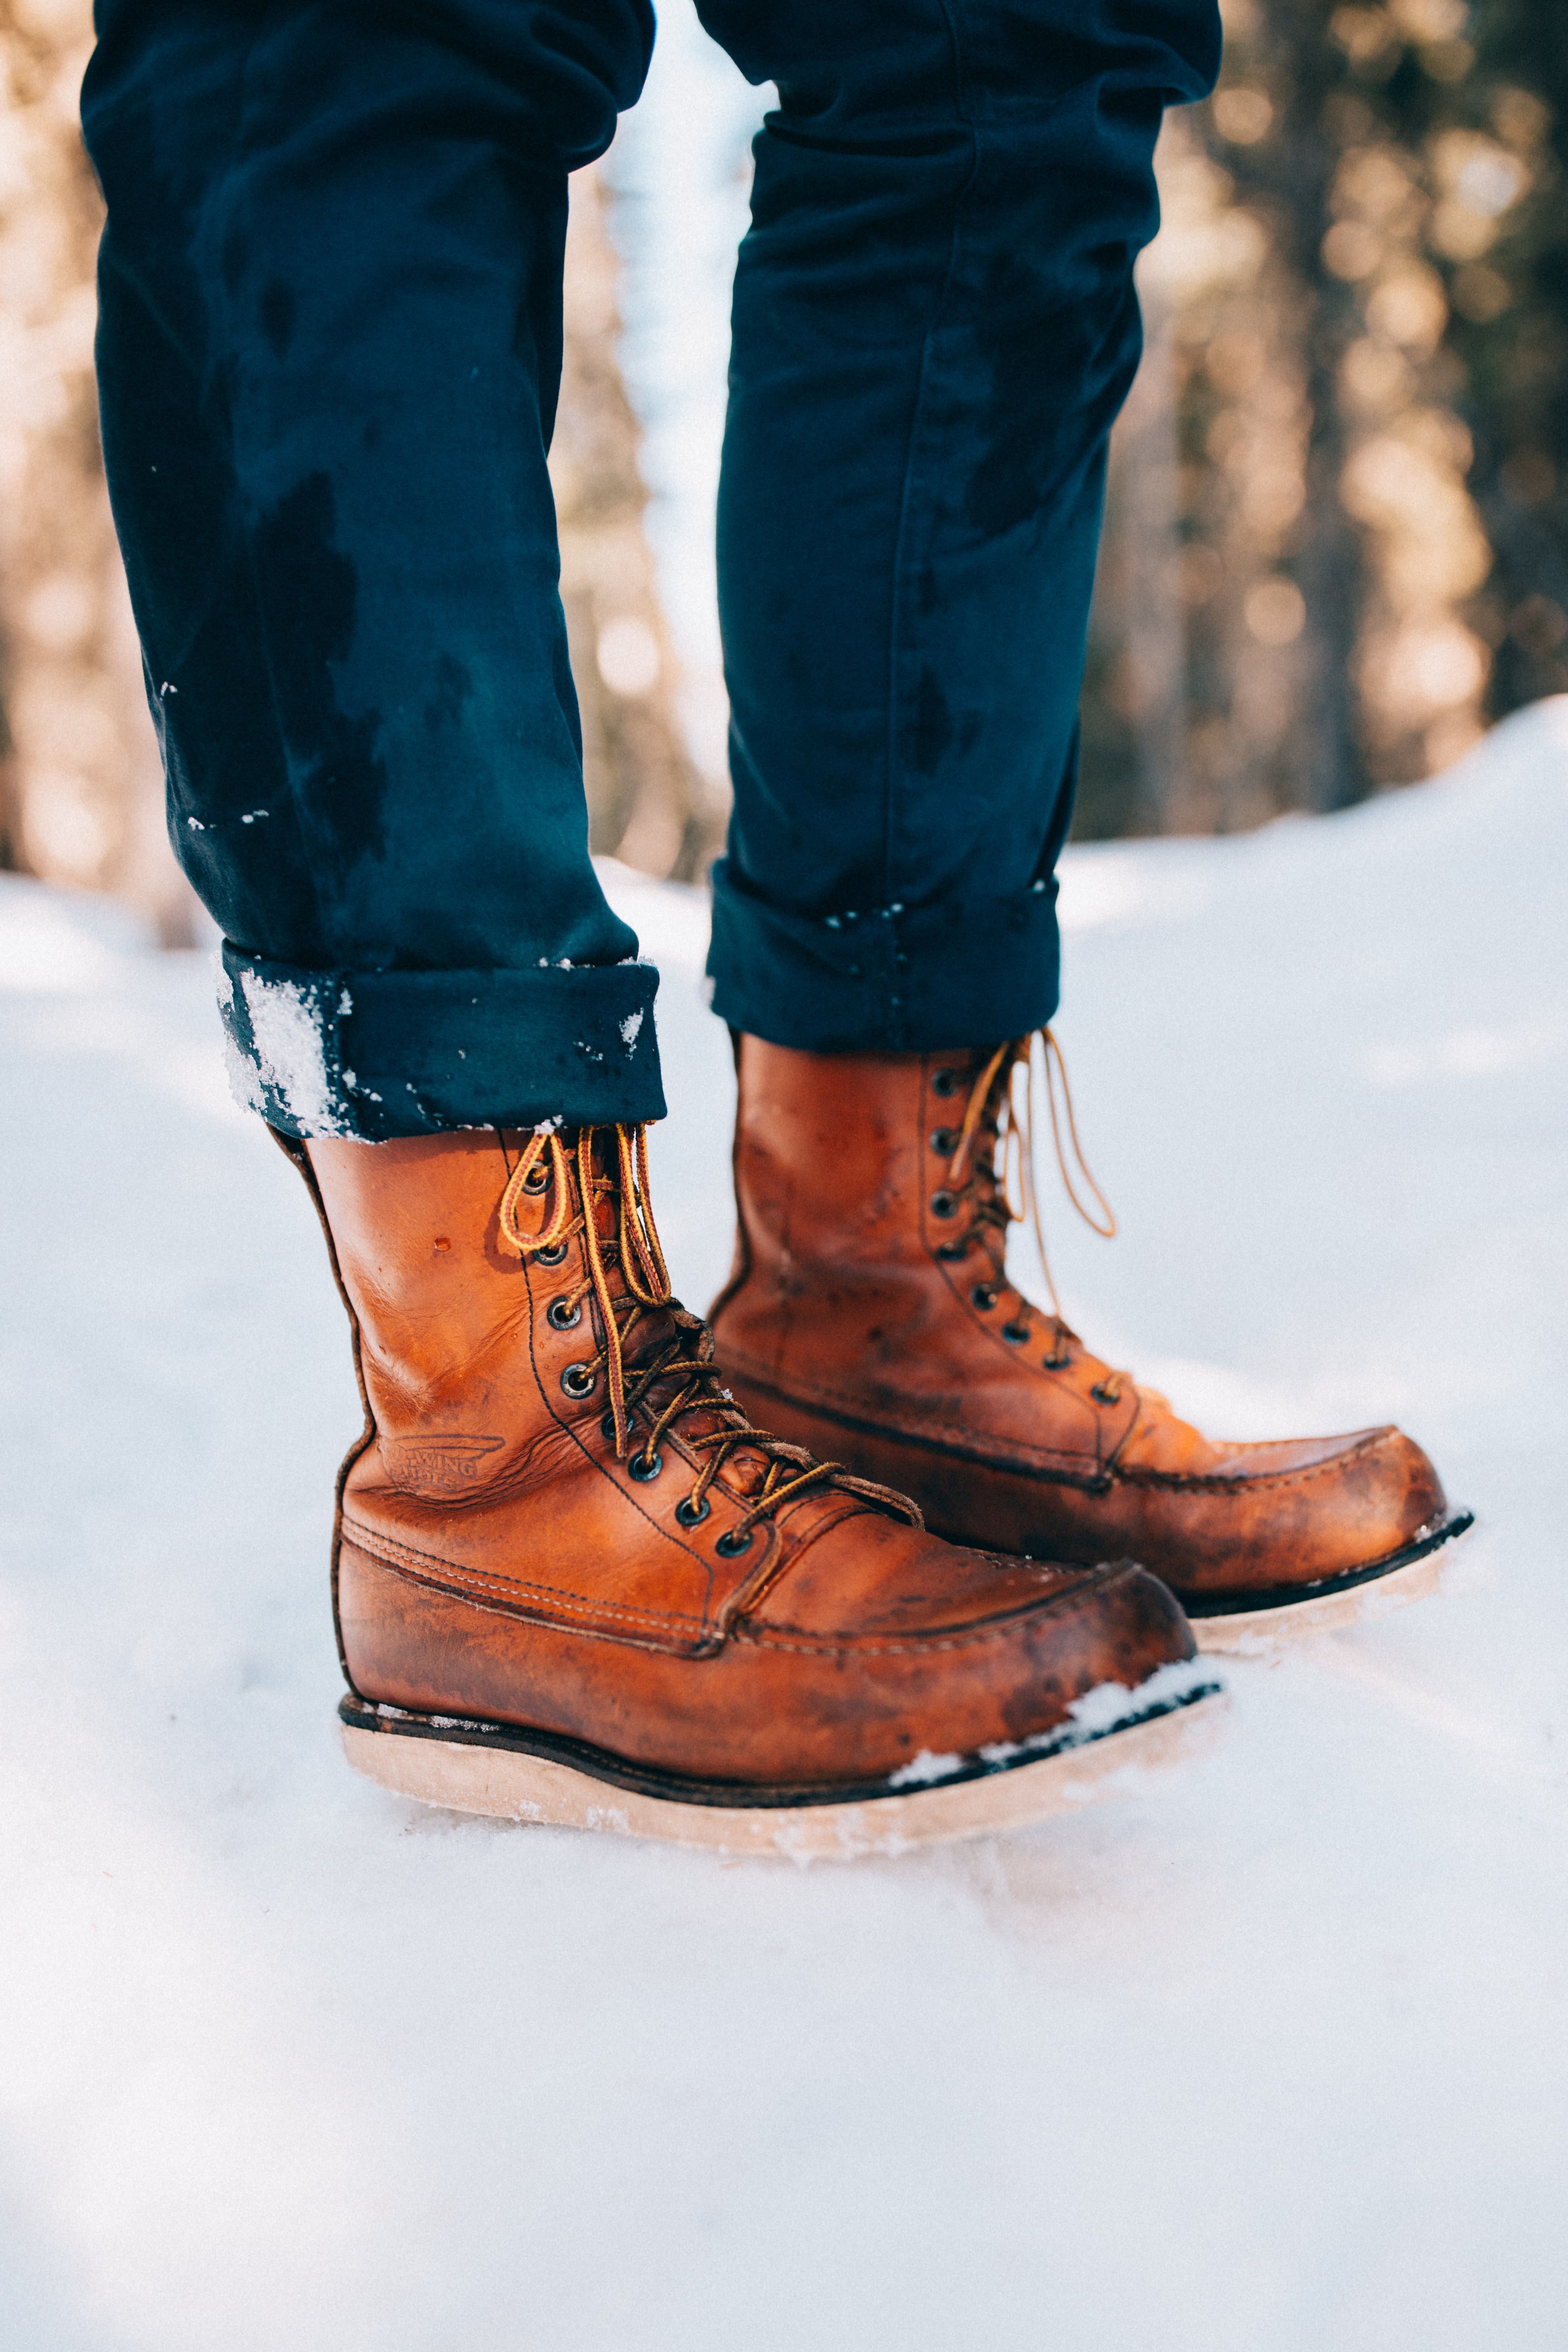 1aa040d2d32 Exploring Alaska in the Red Wing Heritage 8 inch Moc toe boots  redwing   redwingboots  redwindheritage  moctoe  shoes  boots  alaska  travel  style  ...